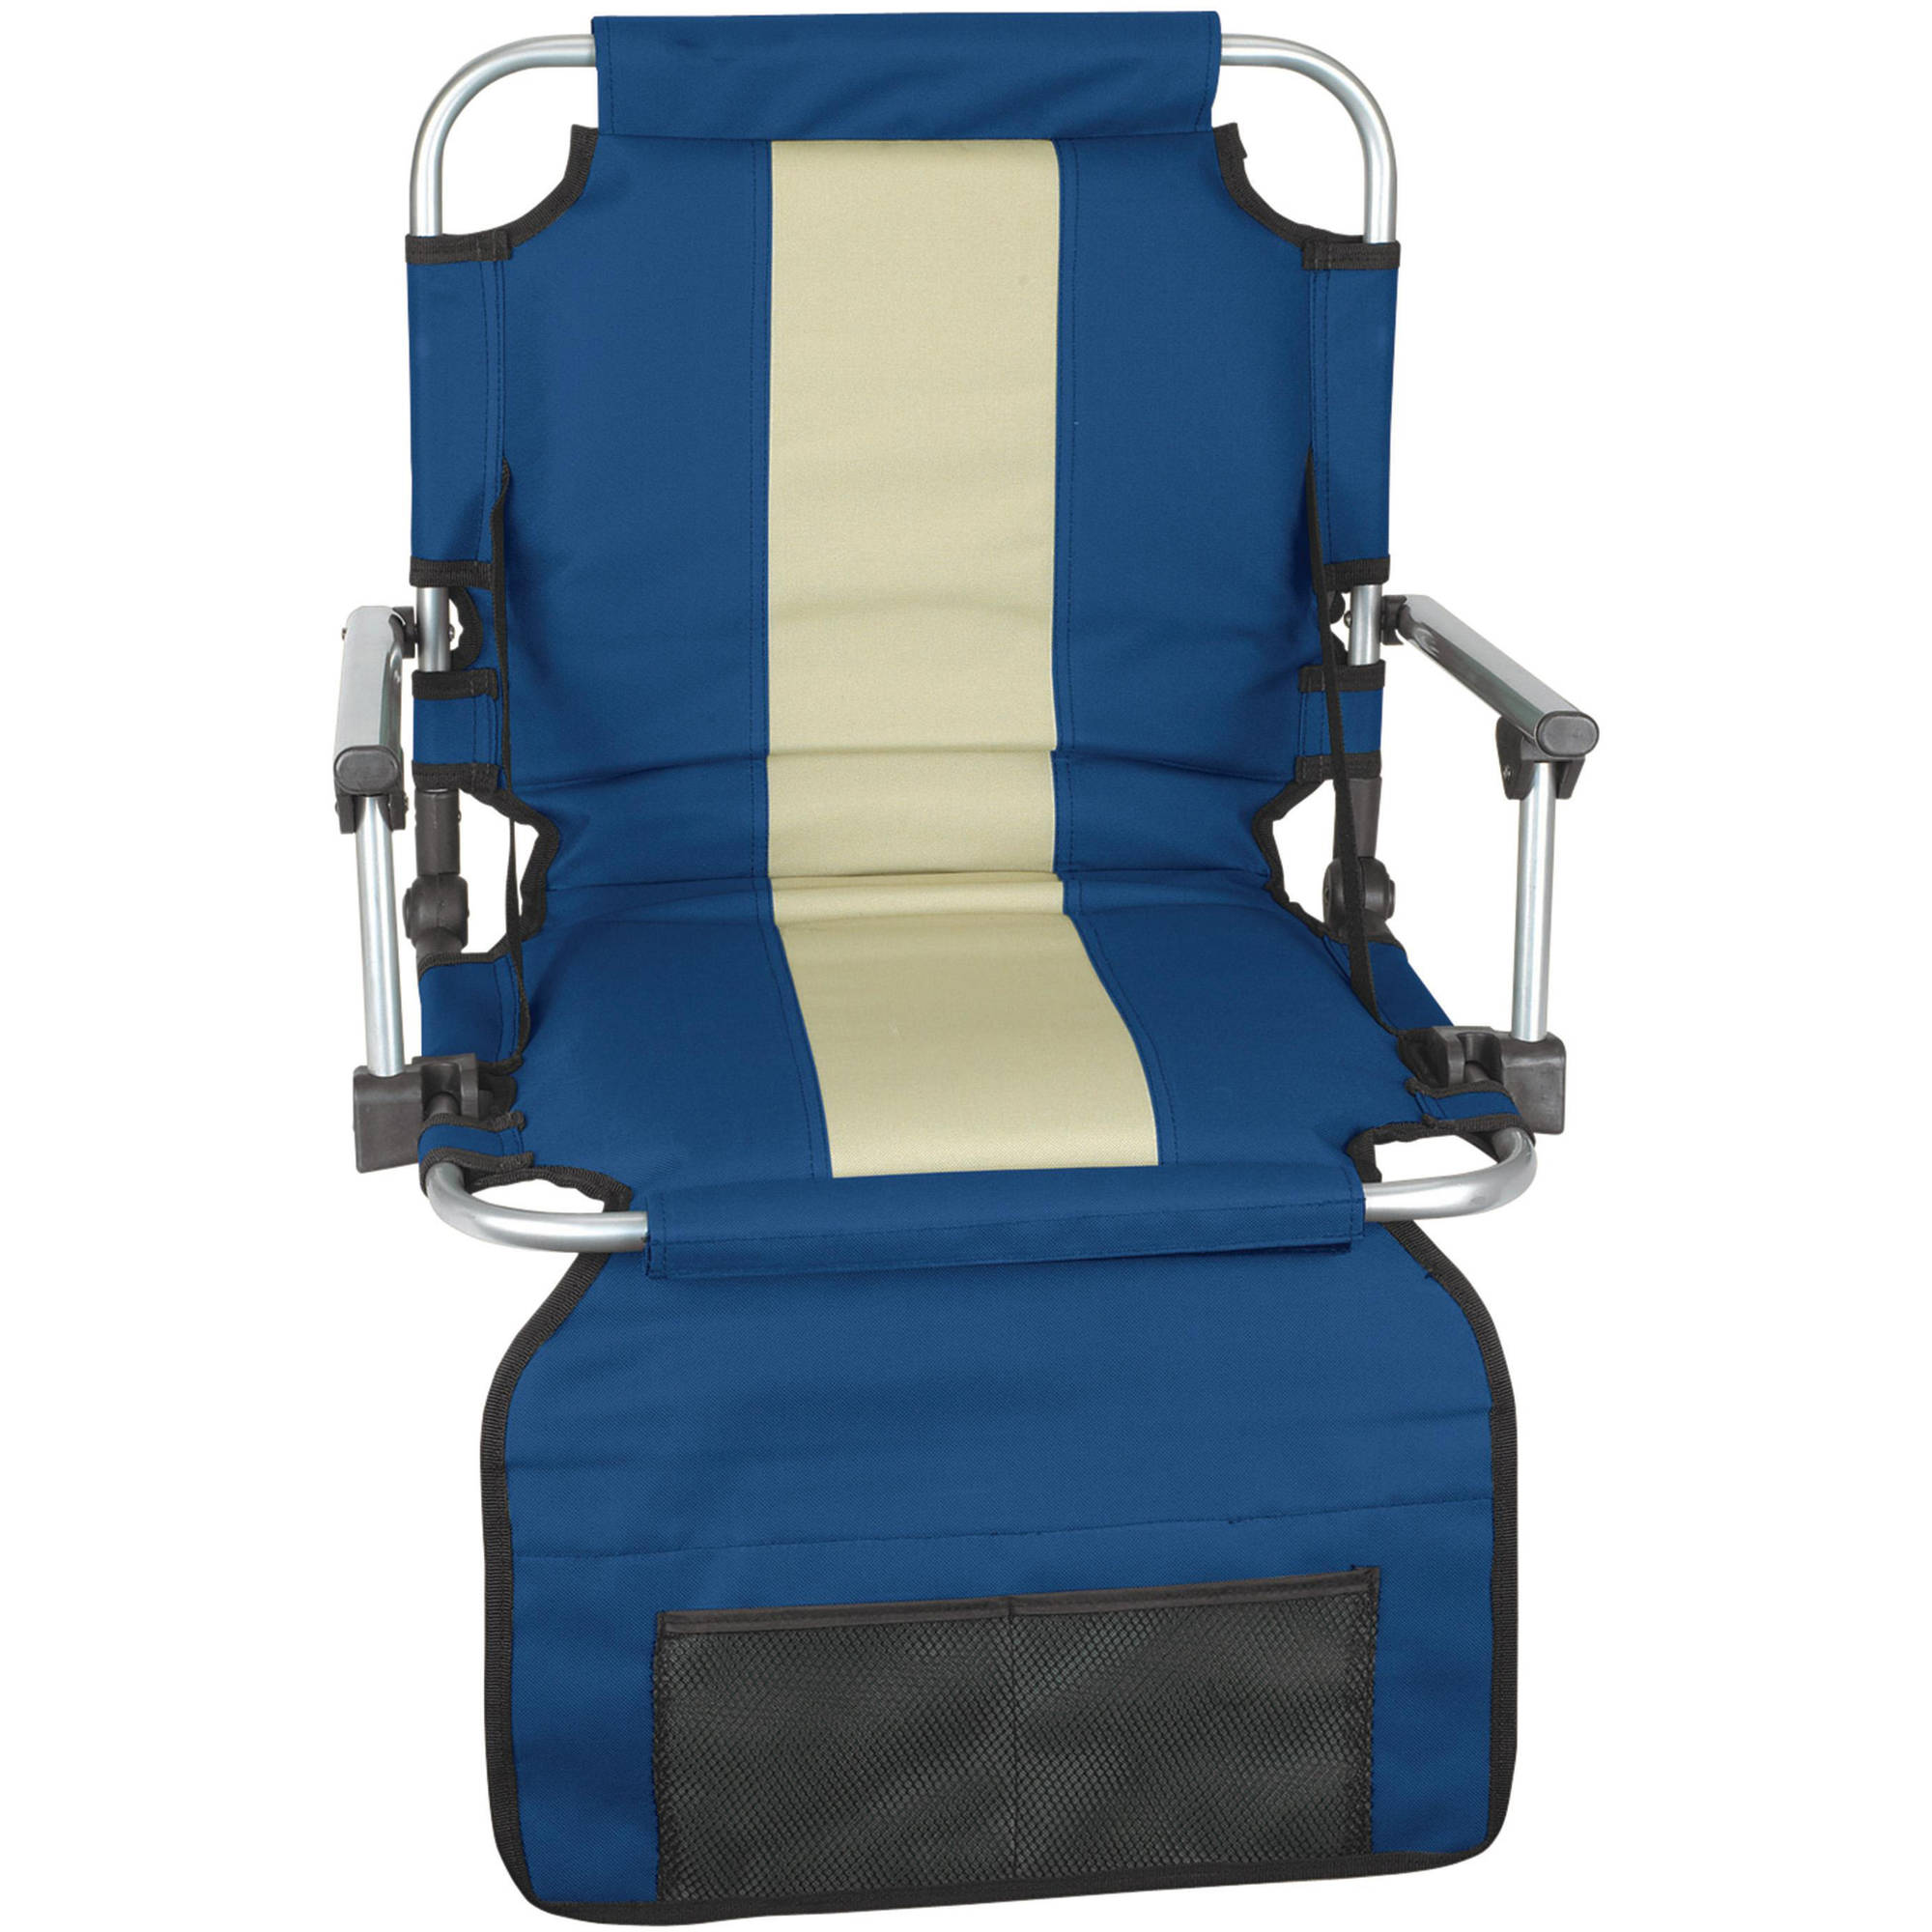 Stansport Folding Stadium Seat with Arms Walmart